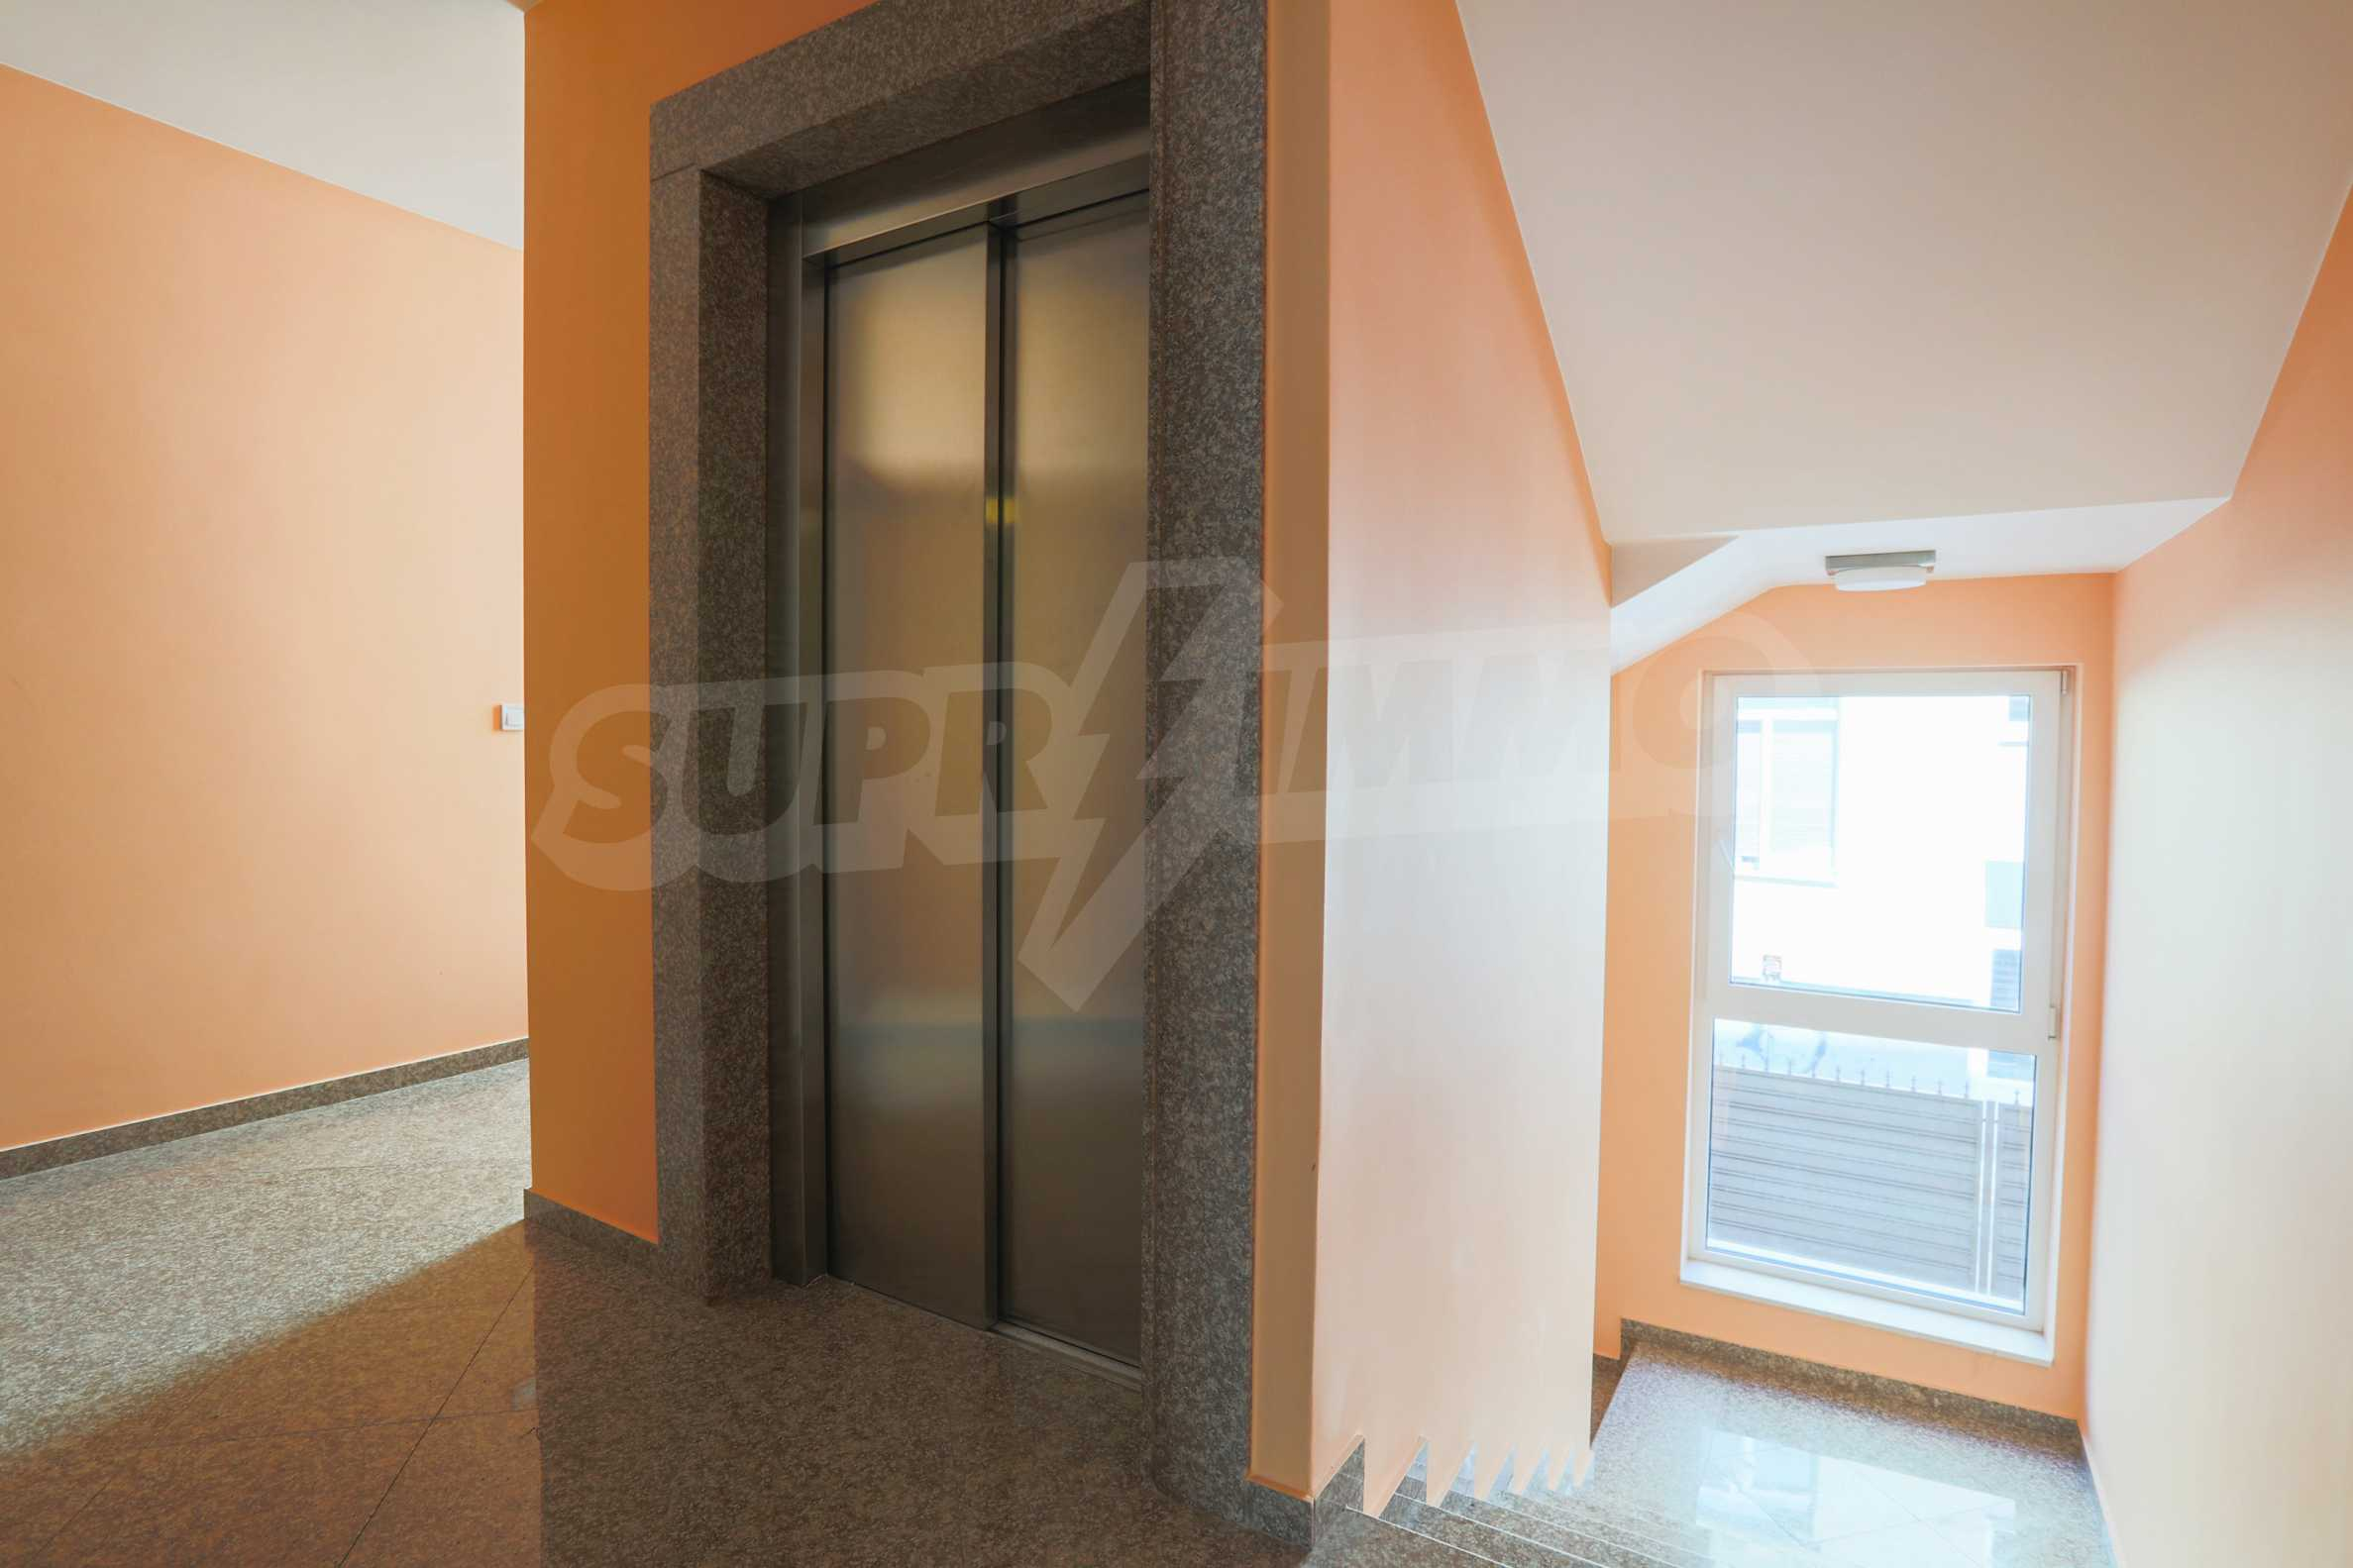 1-bedroom apartment in Sofia 15